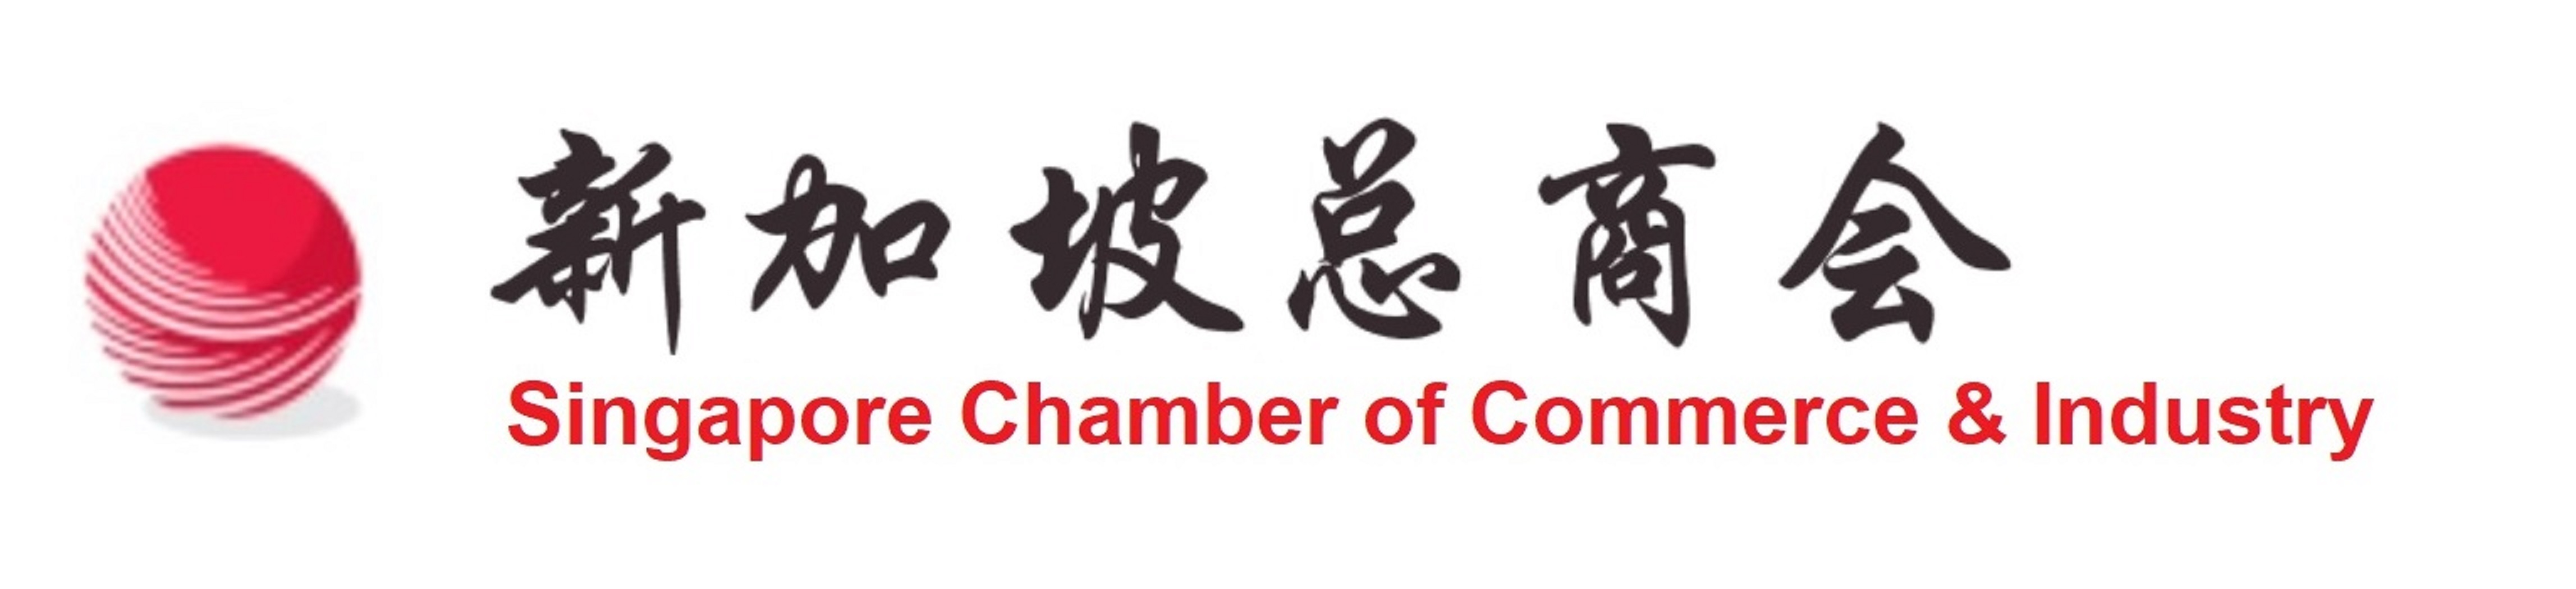 Singapore Chamber of Commerce & Industry Easy to Use Website Creation Tools (Promocode  SCCI10) - Limited Offer